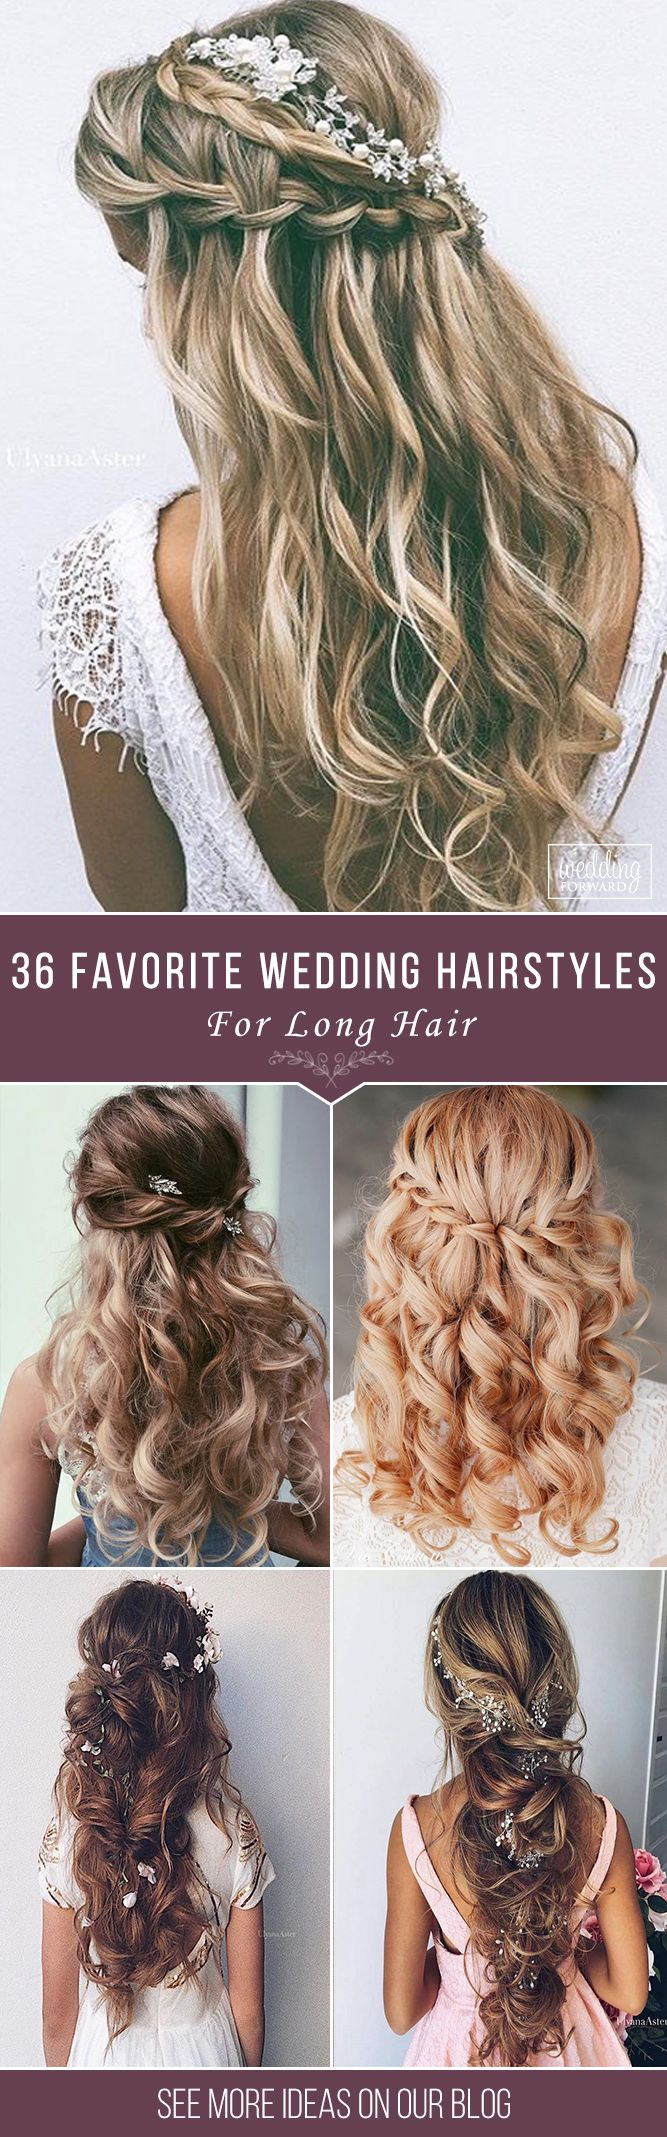 36 Our Favorite Wedding Hairstyles For Long Hair ❤ We make a list our favorite...